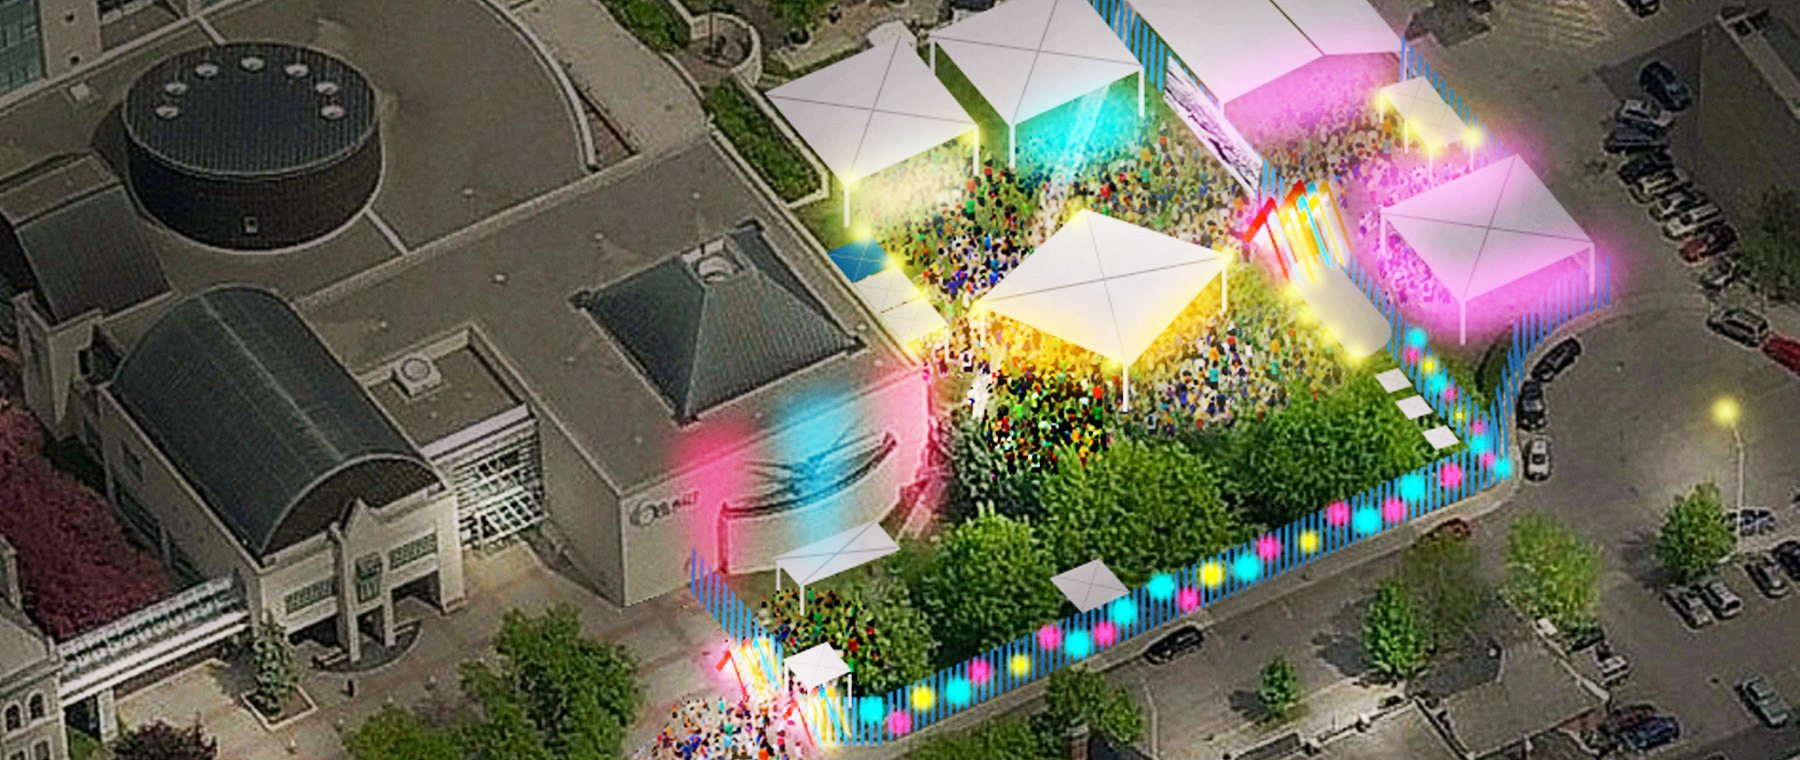 Arboretum Festival's village will feed those in need with art, beer & bazaar